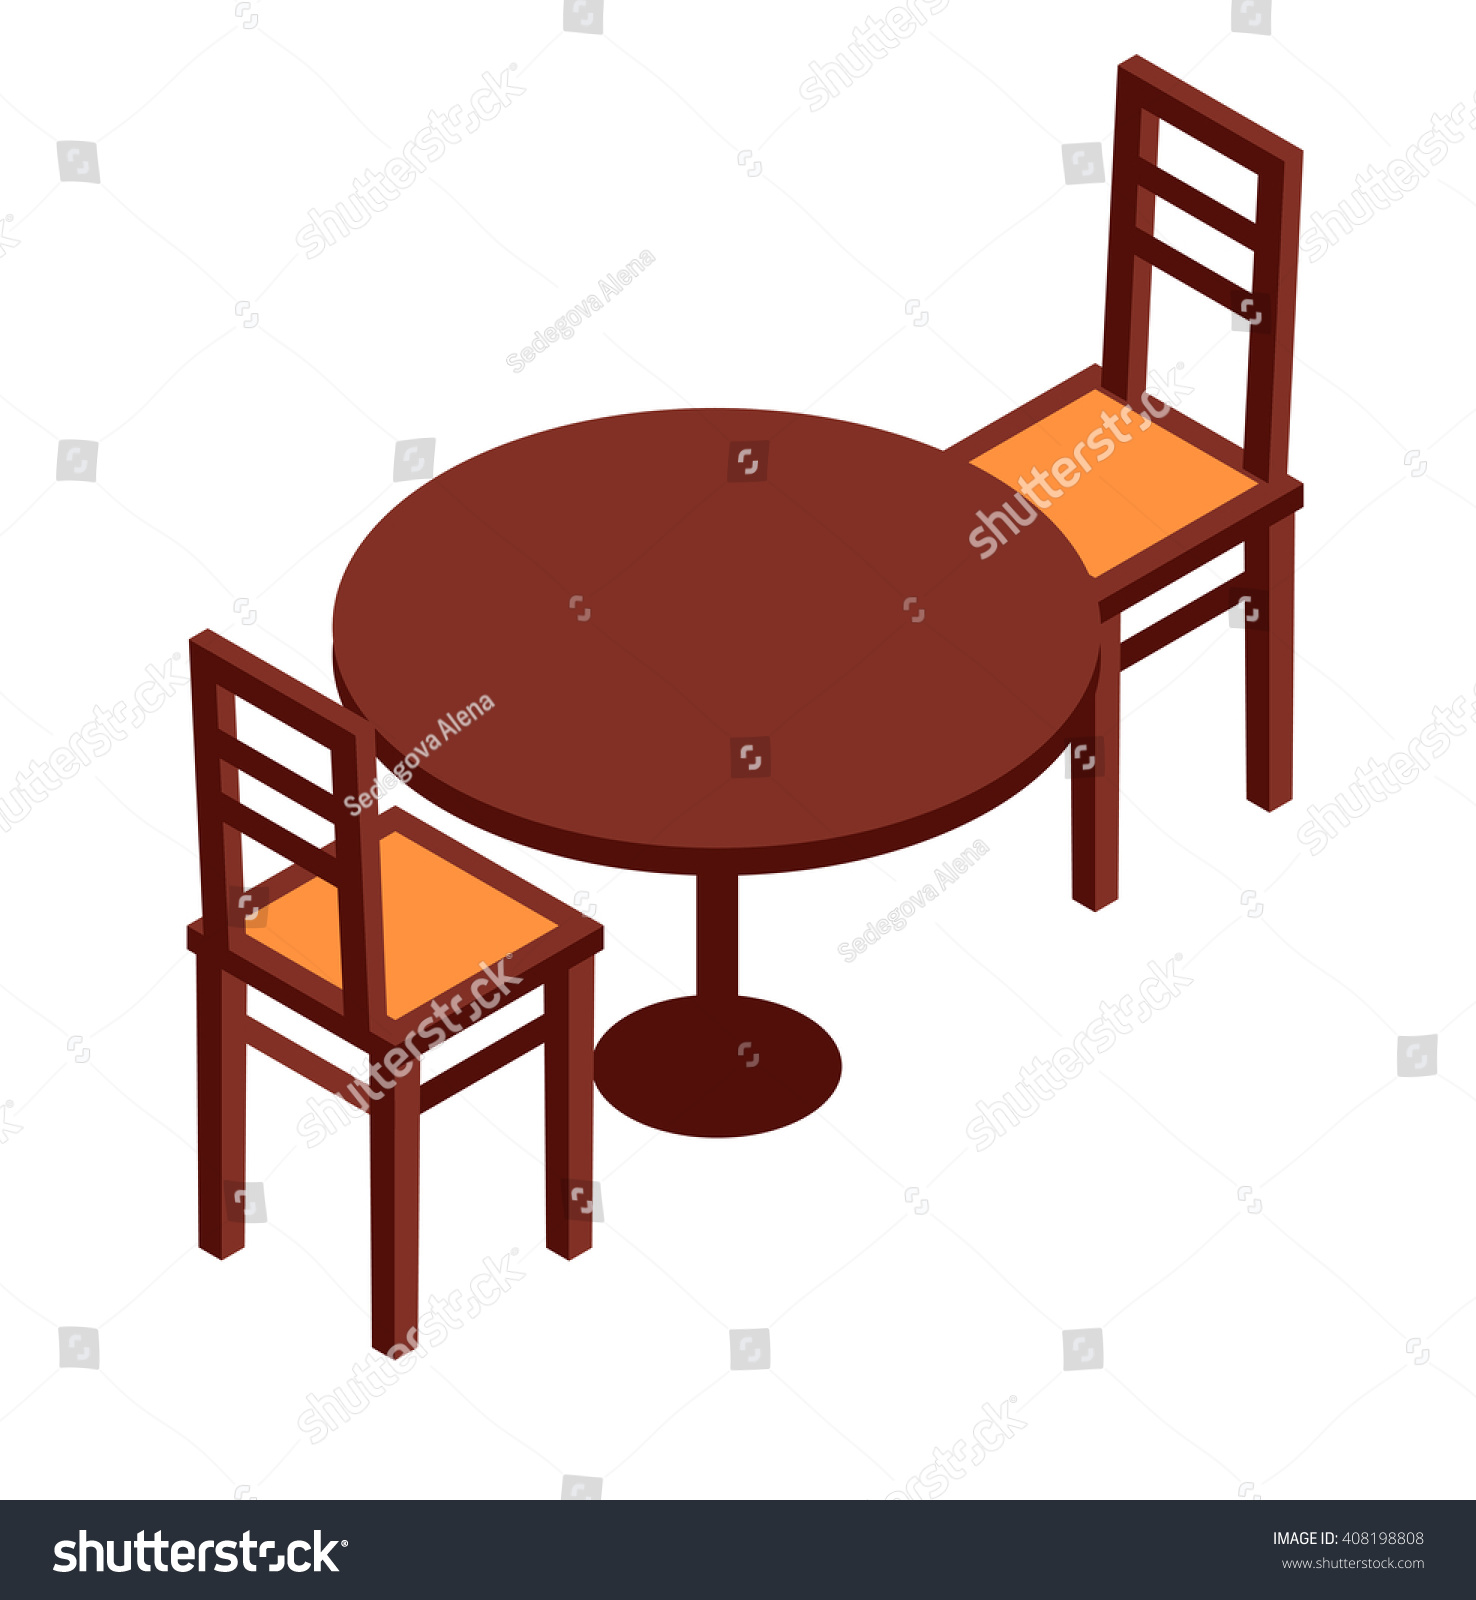 Indoor cafe tables and chairs - Cafe Table Chairs Isometric Table And Chairs Isometric Furniture Isometric Cafe Elements Isometric Table And